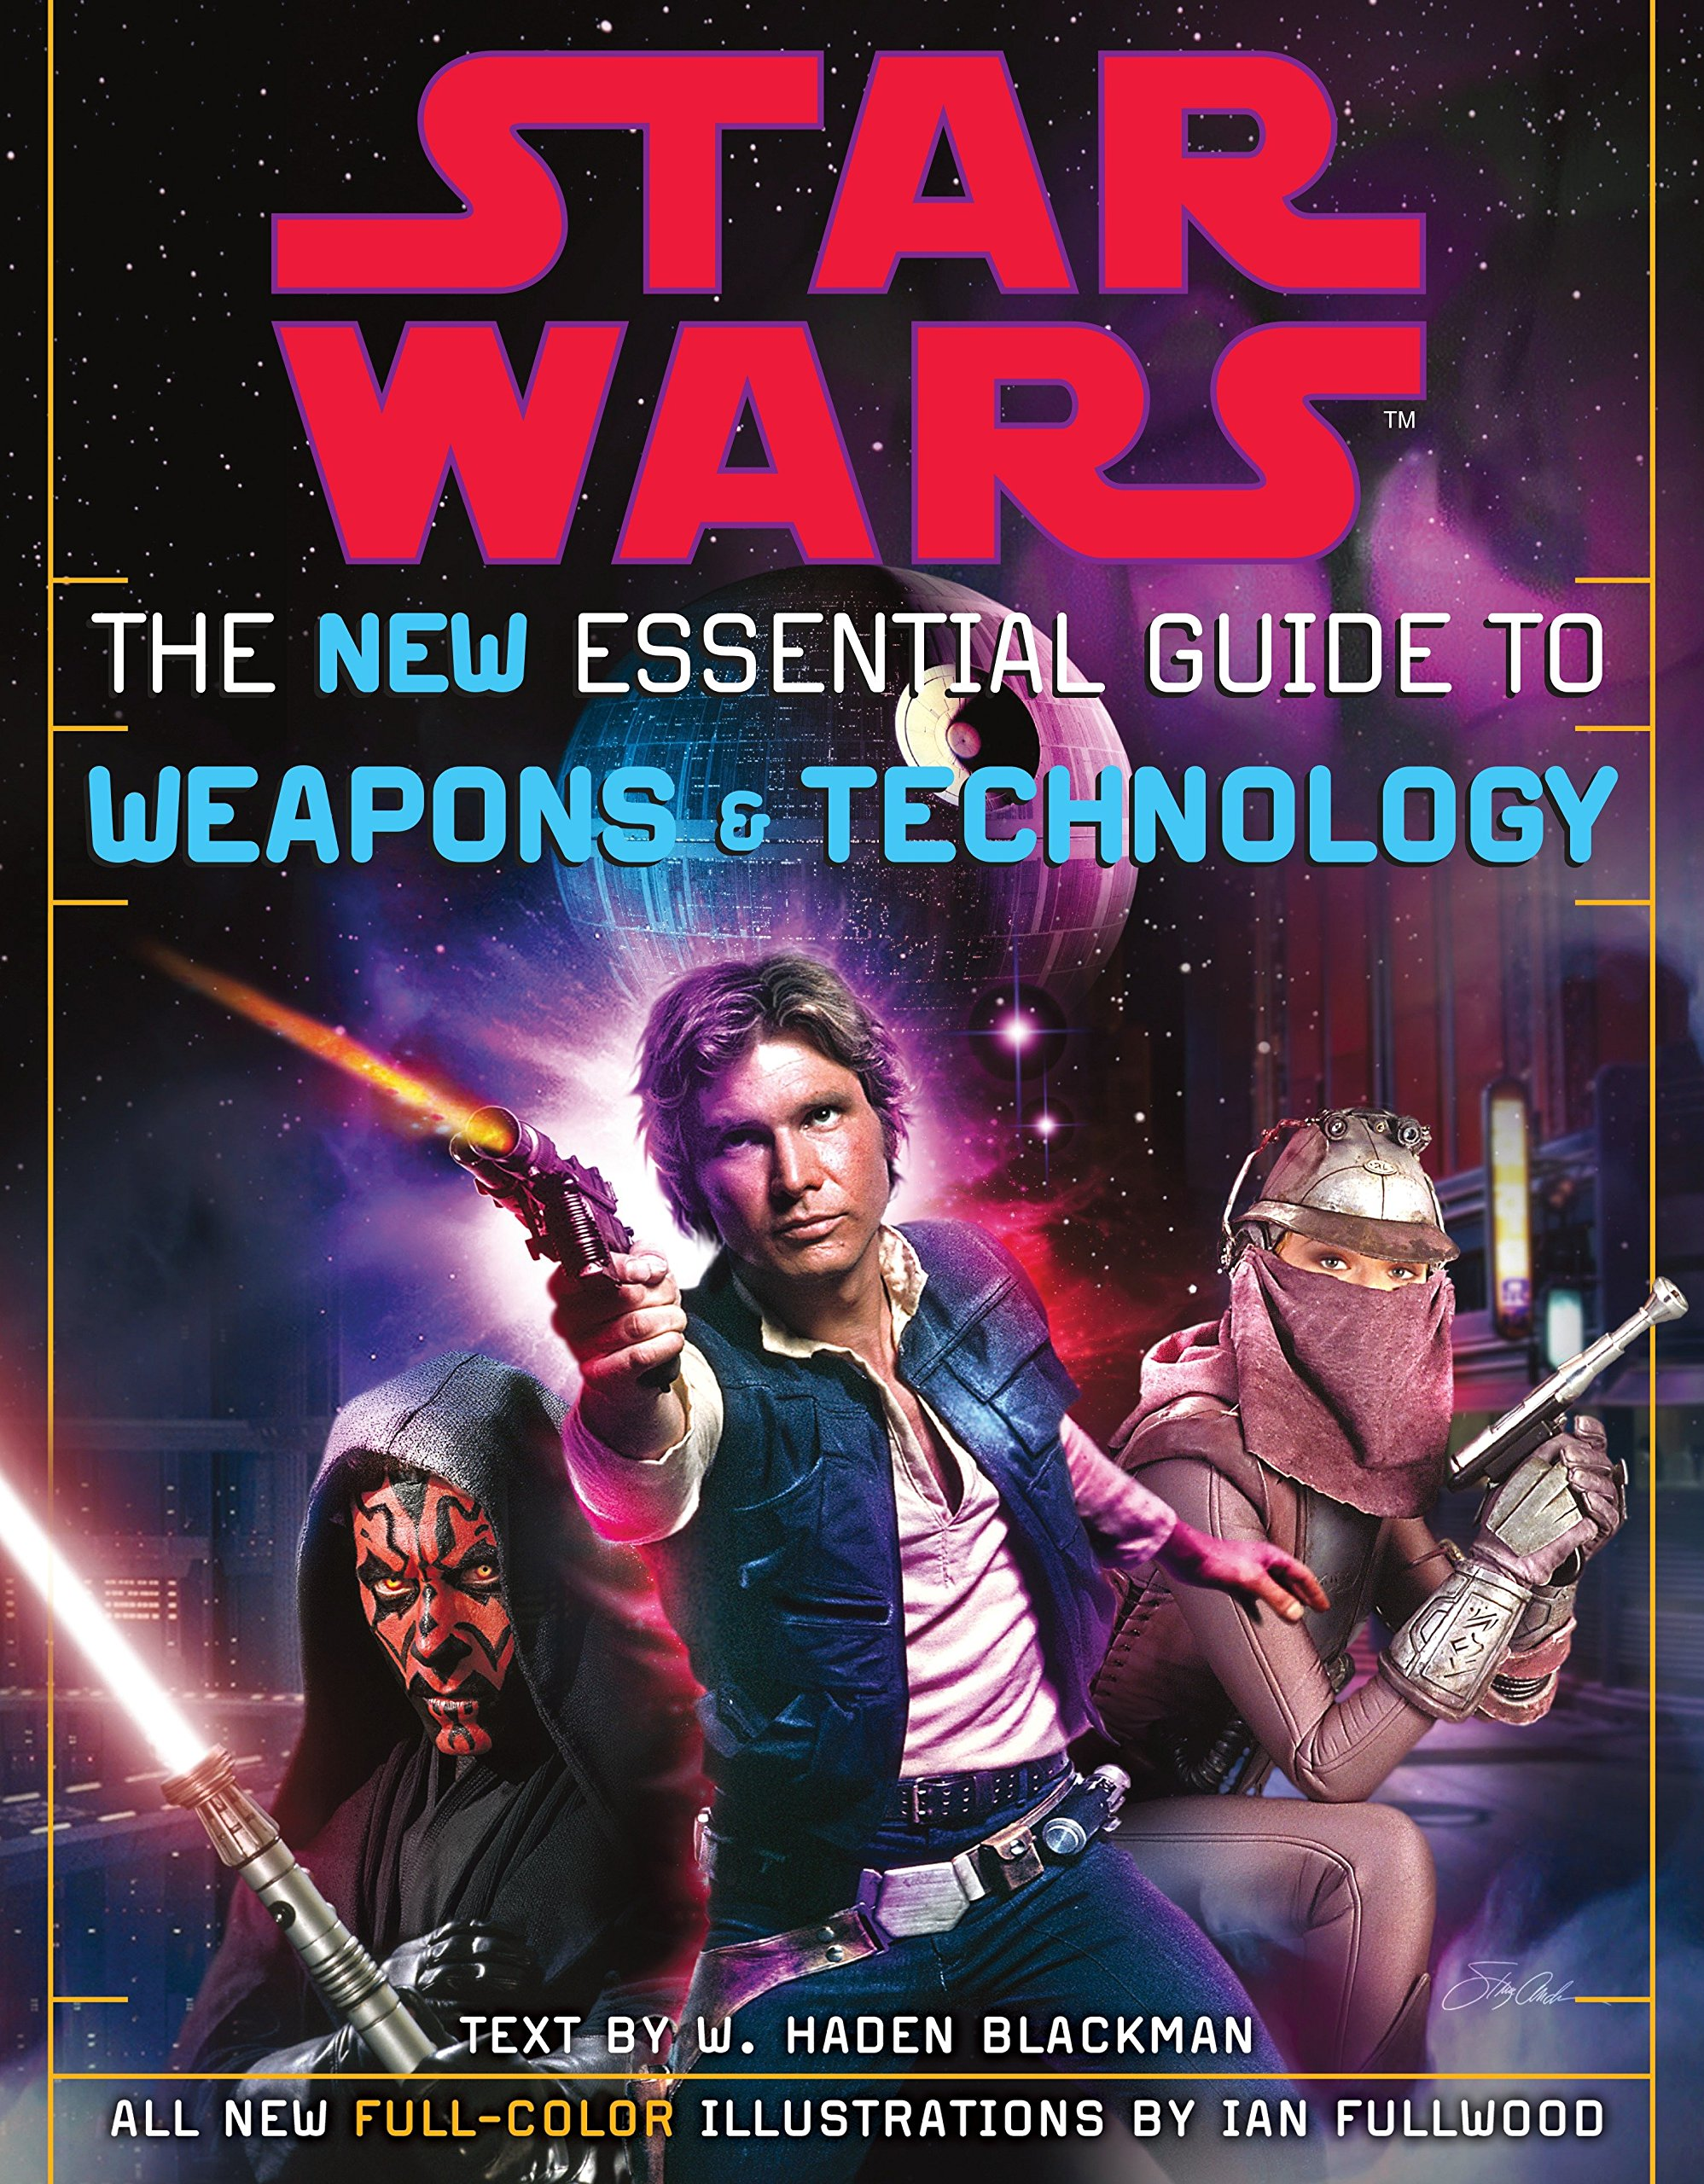 Star Wars: The New Essential Guide to Weapons and Technology